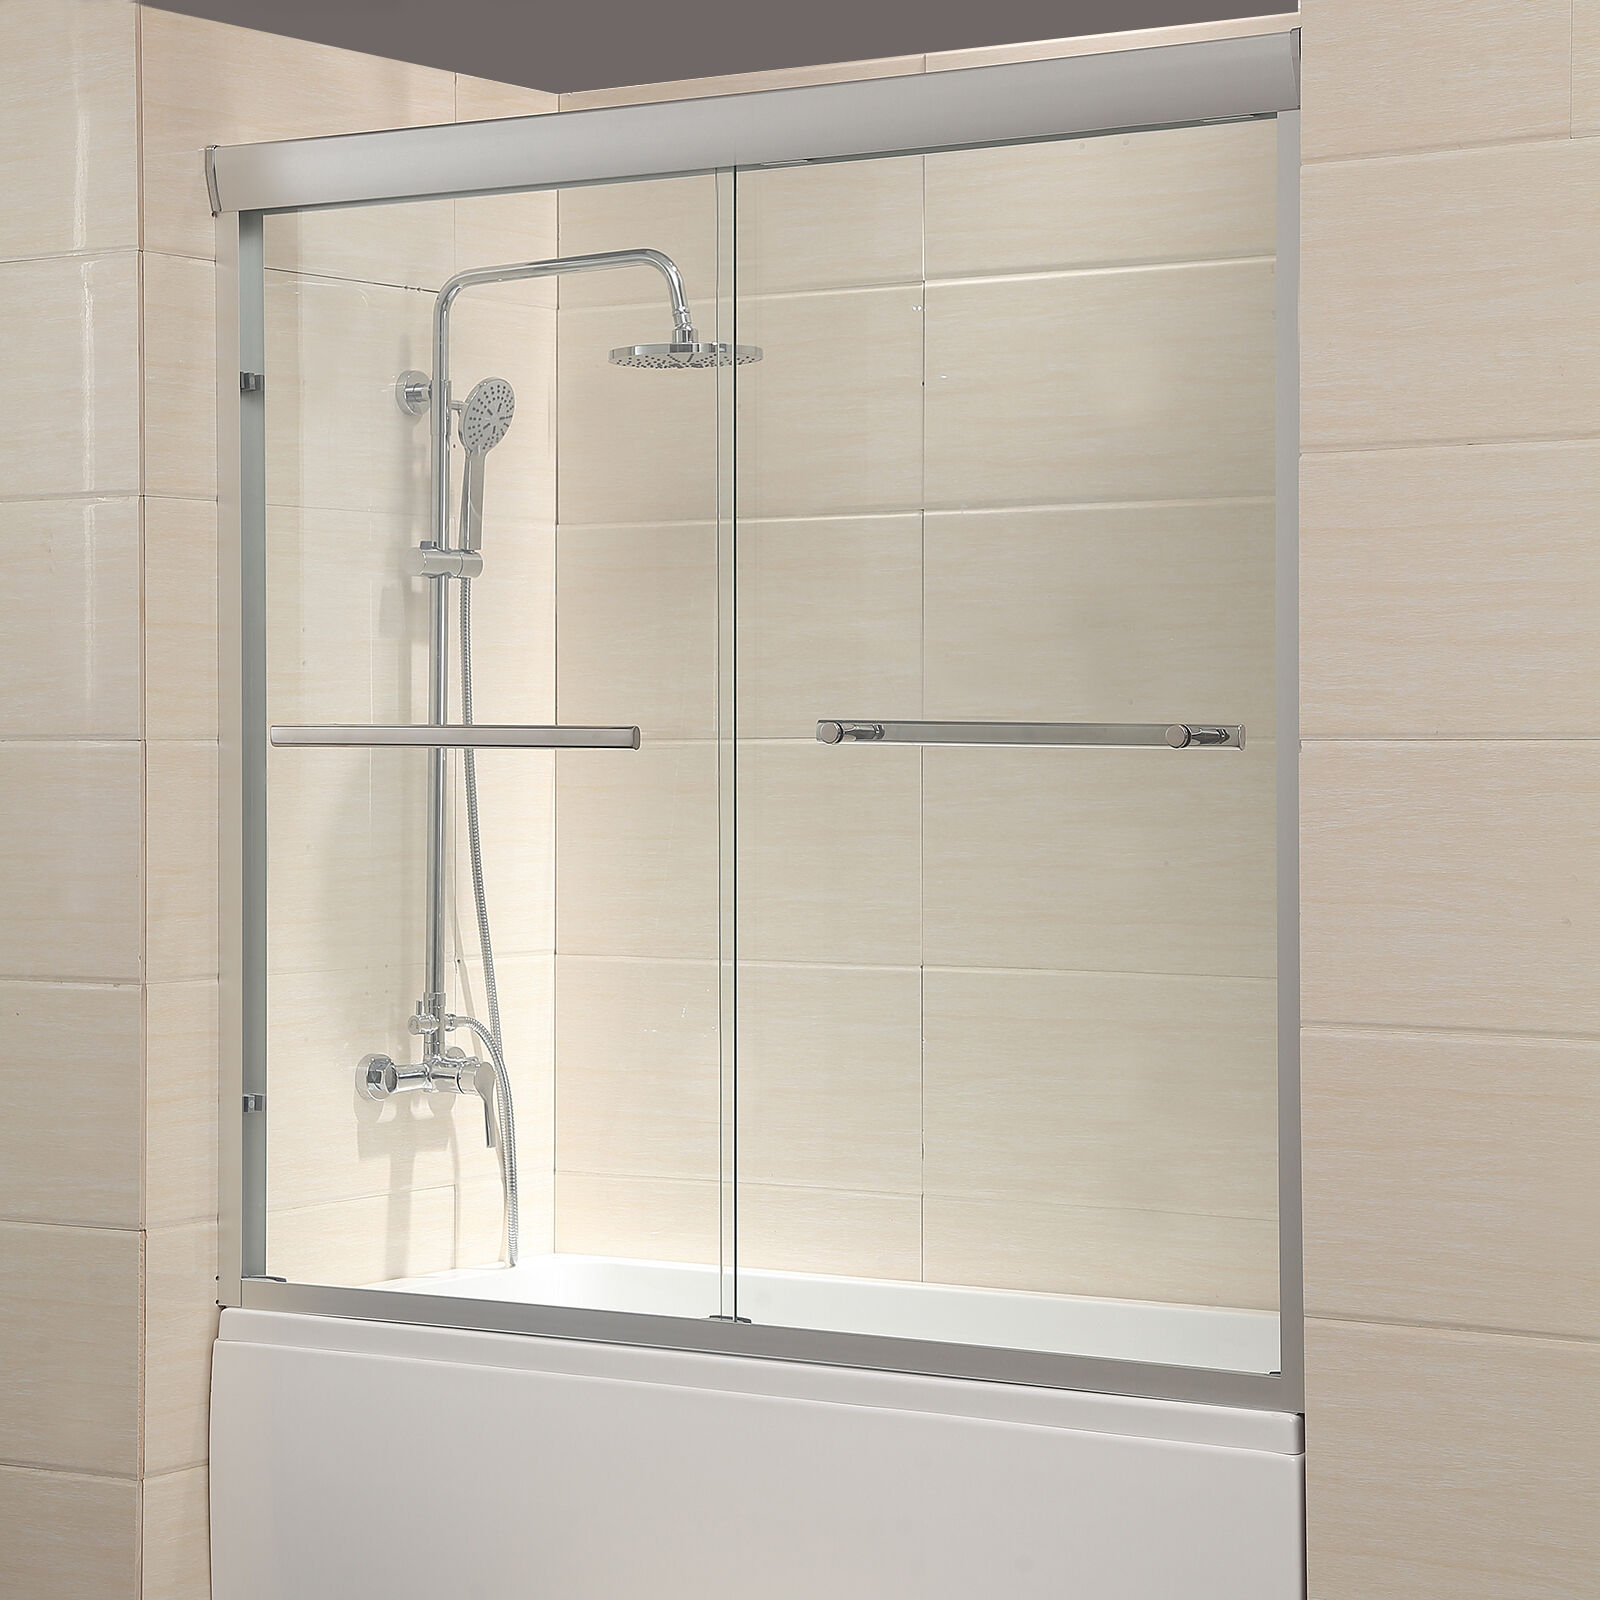 60 Quot Framed 1 4 Quot Clear Glass 2 Sliding Bath Shower Door